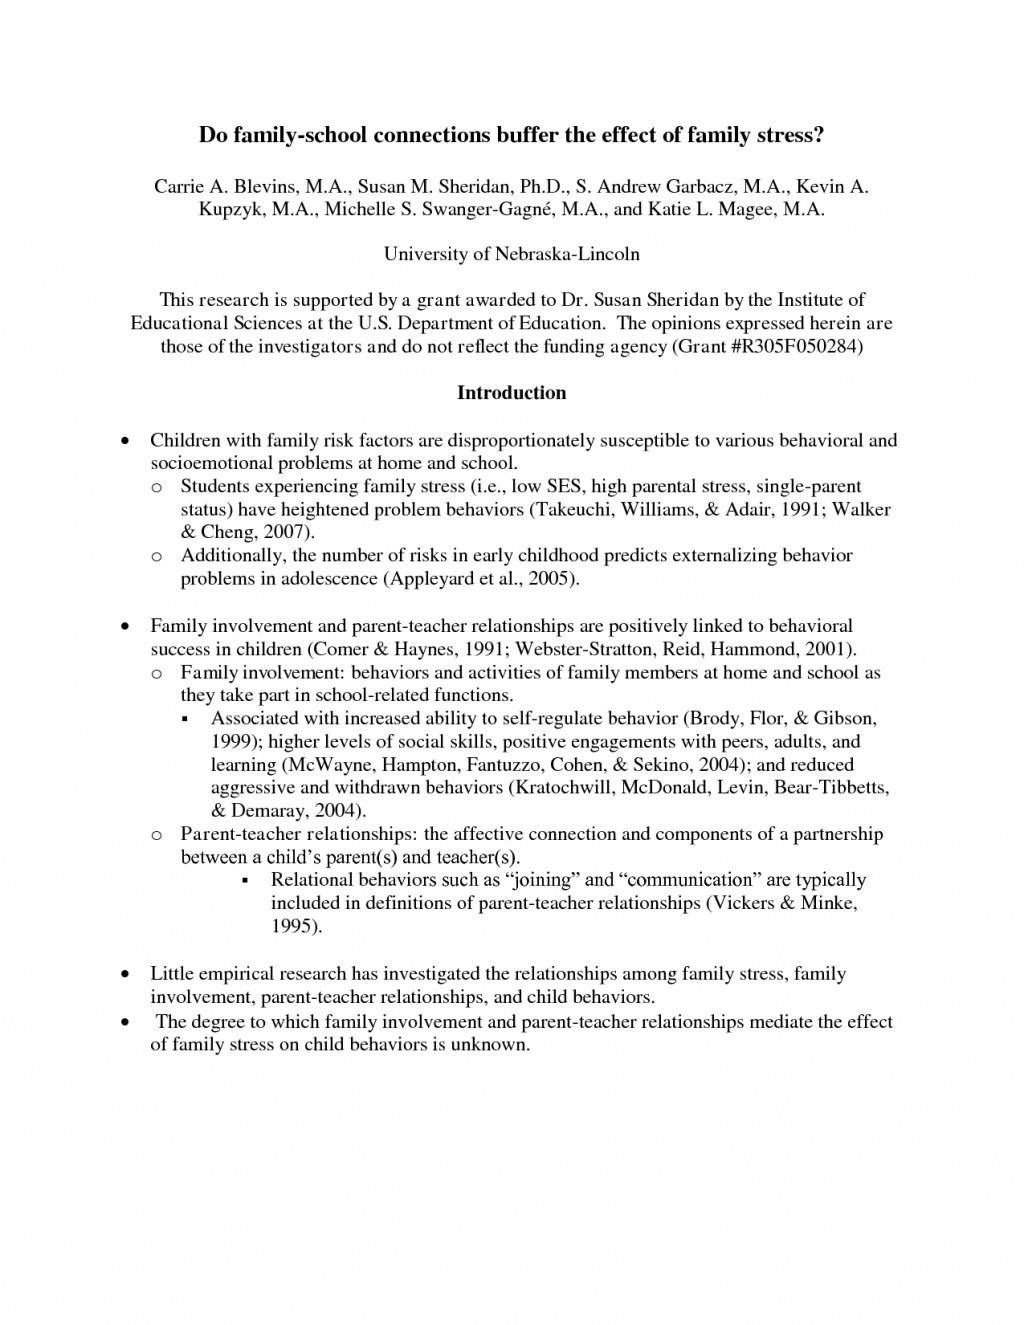 010 Literature Research Paper Formidable Outline Example Topics World Large